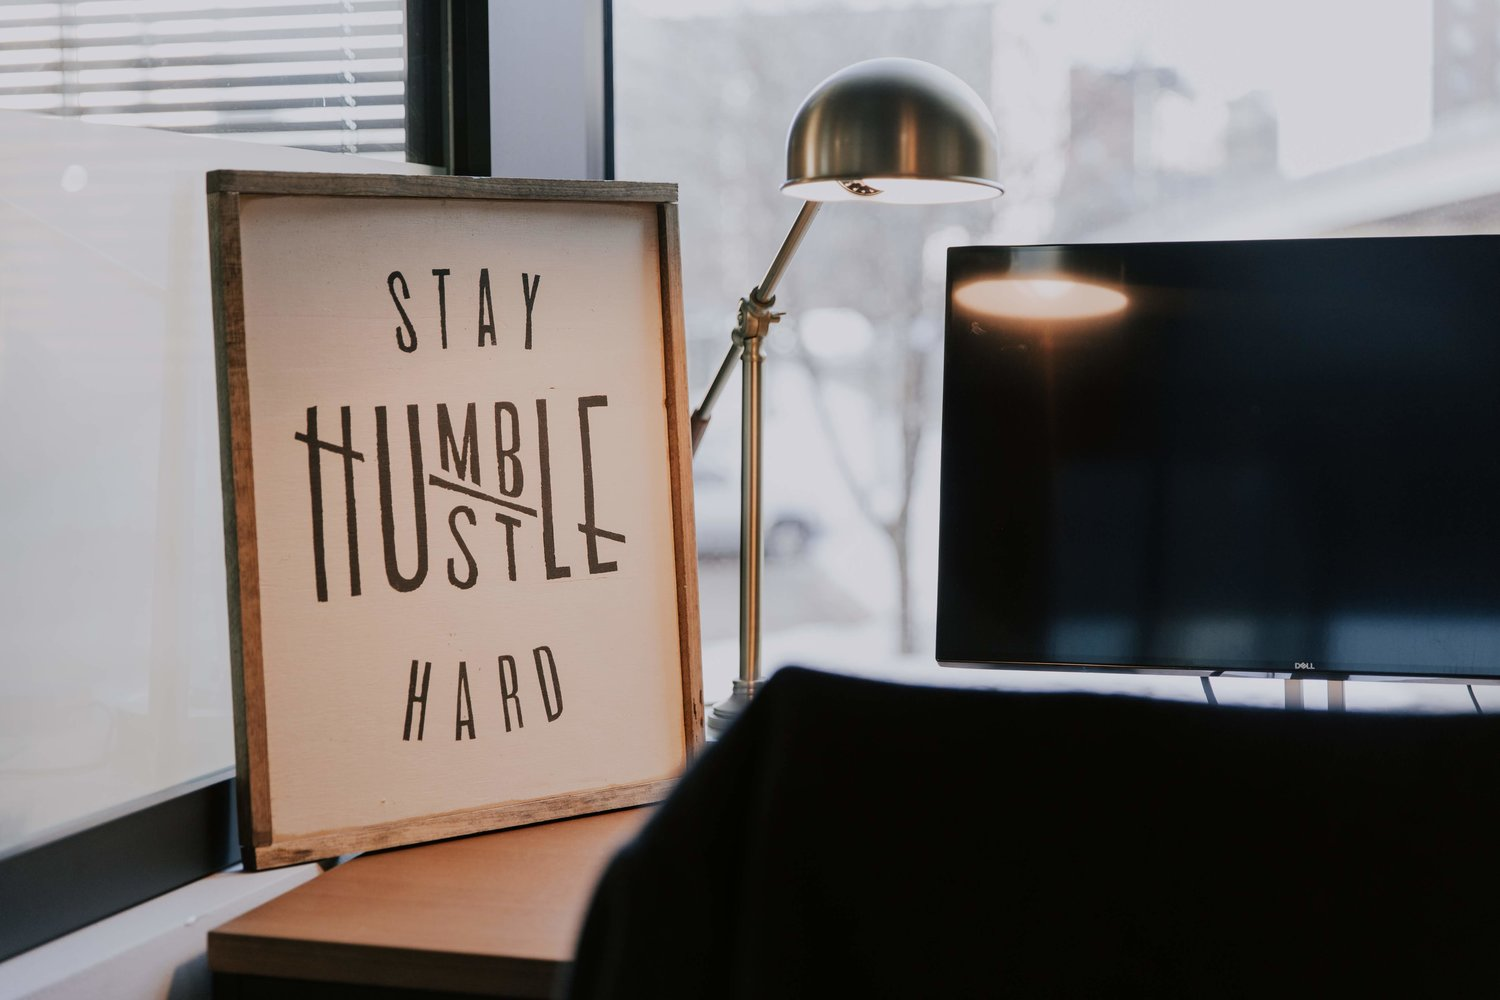 - Pursue your business priorities, regardless of company size or sector, supported by a team with unwavering focus on execution and results. We're passionate about the stand-alone disciplines of business strategy, program and project management, and organizational change, and experts in combining the three to move mountains.